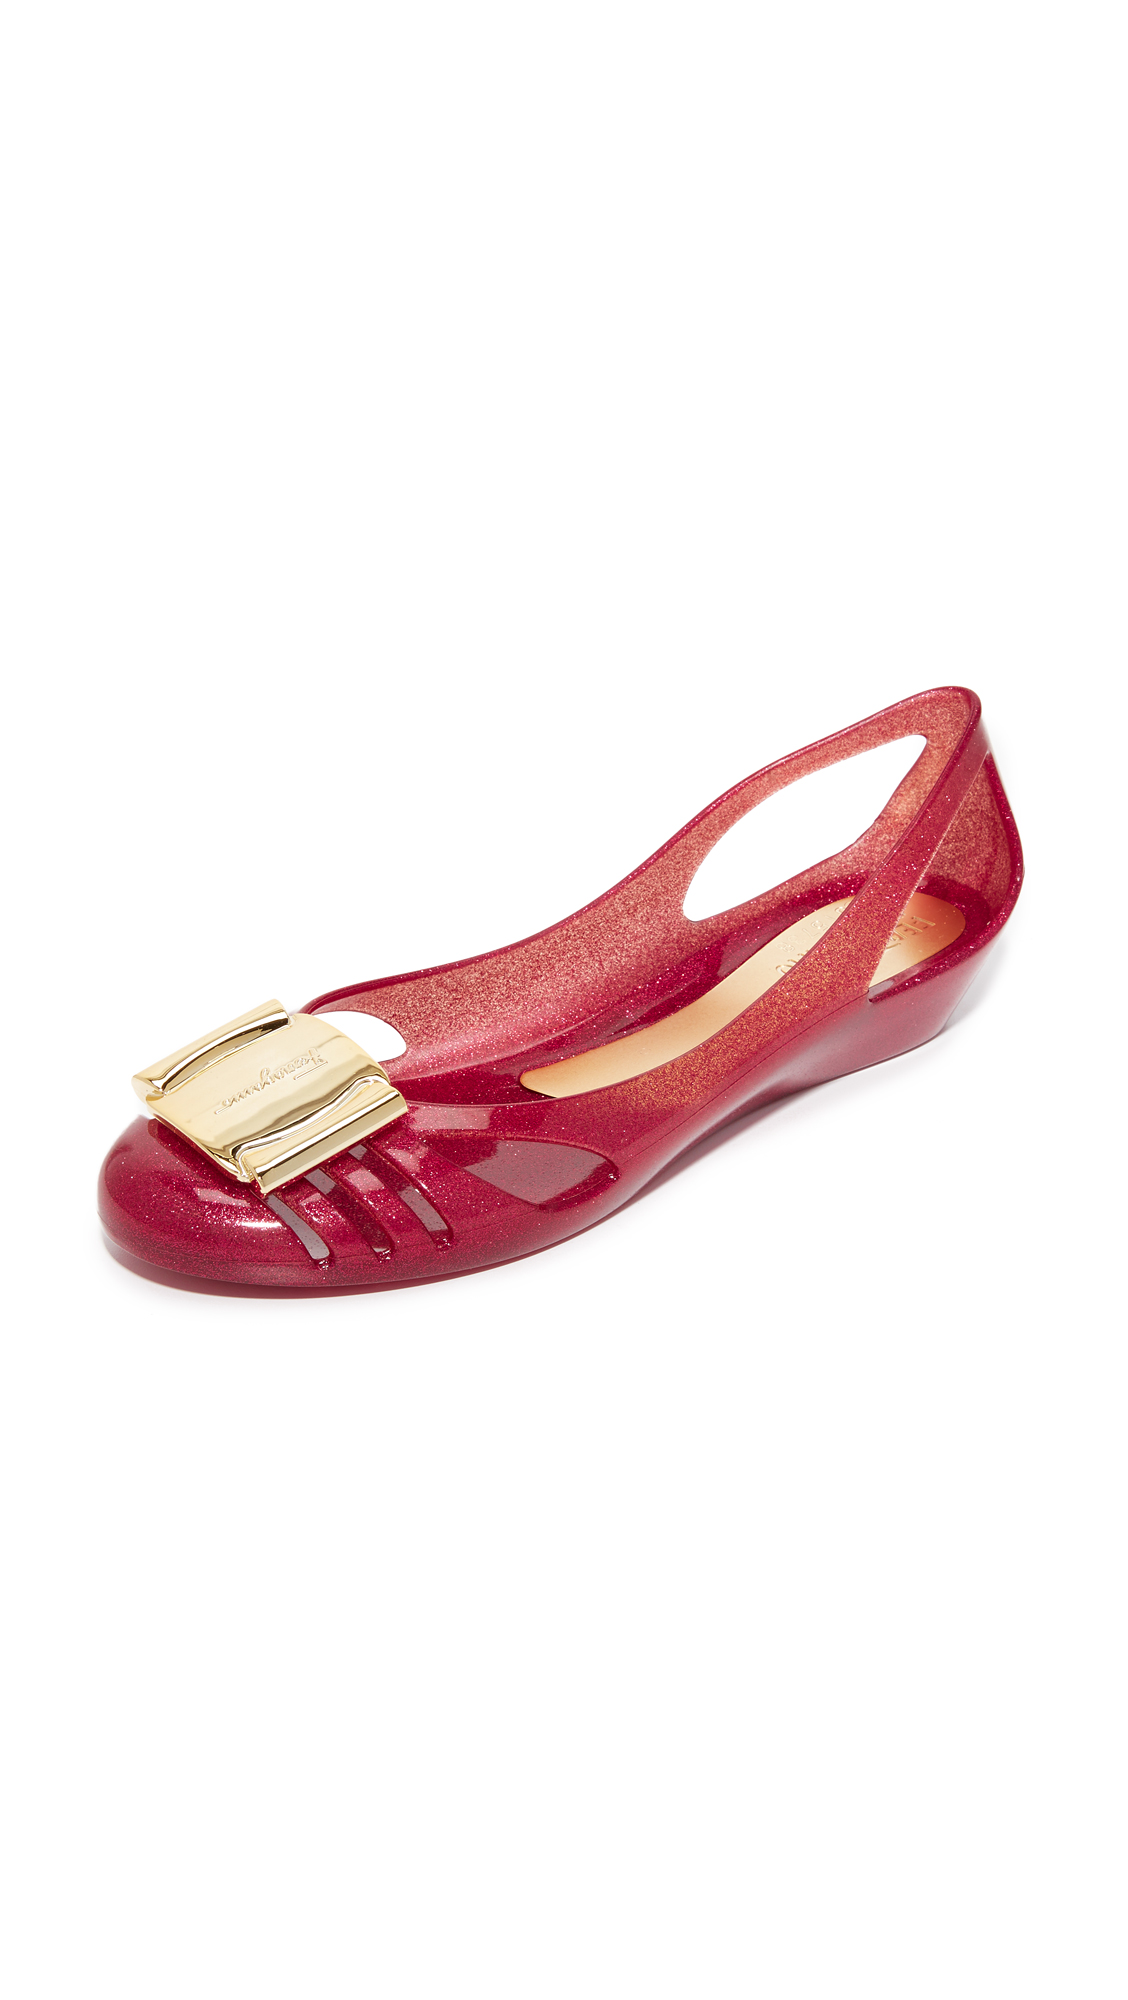 3625db42b6da Salvatore ferragamo bermuda jelly flats shopbop jpg 1128x2000 Red jelly  flats